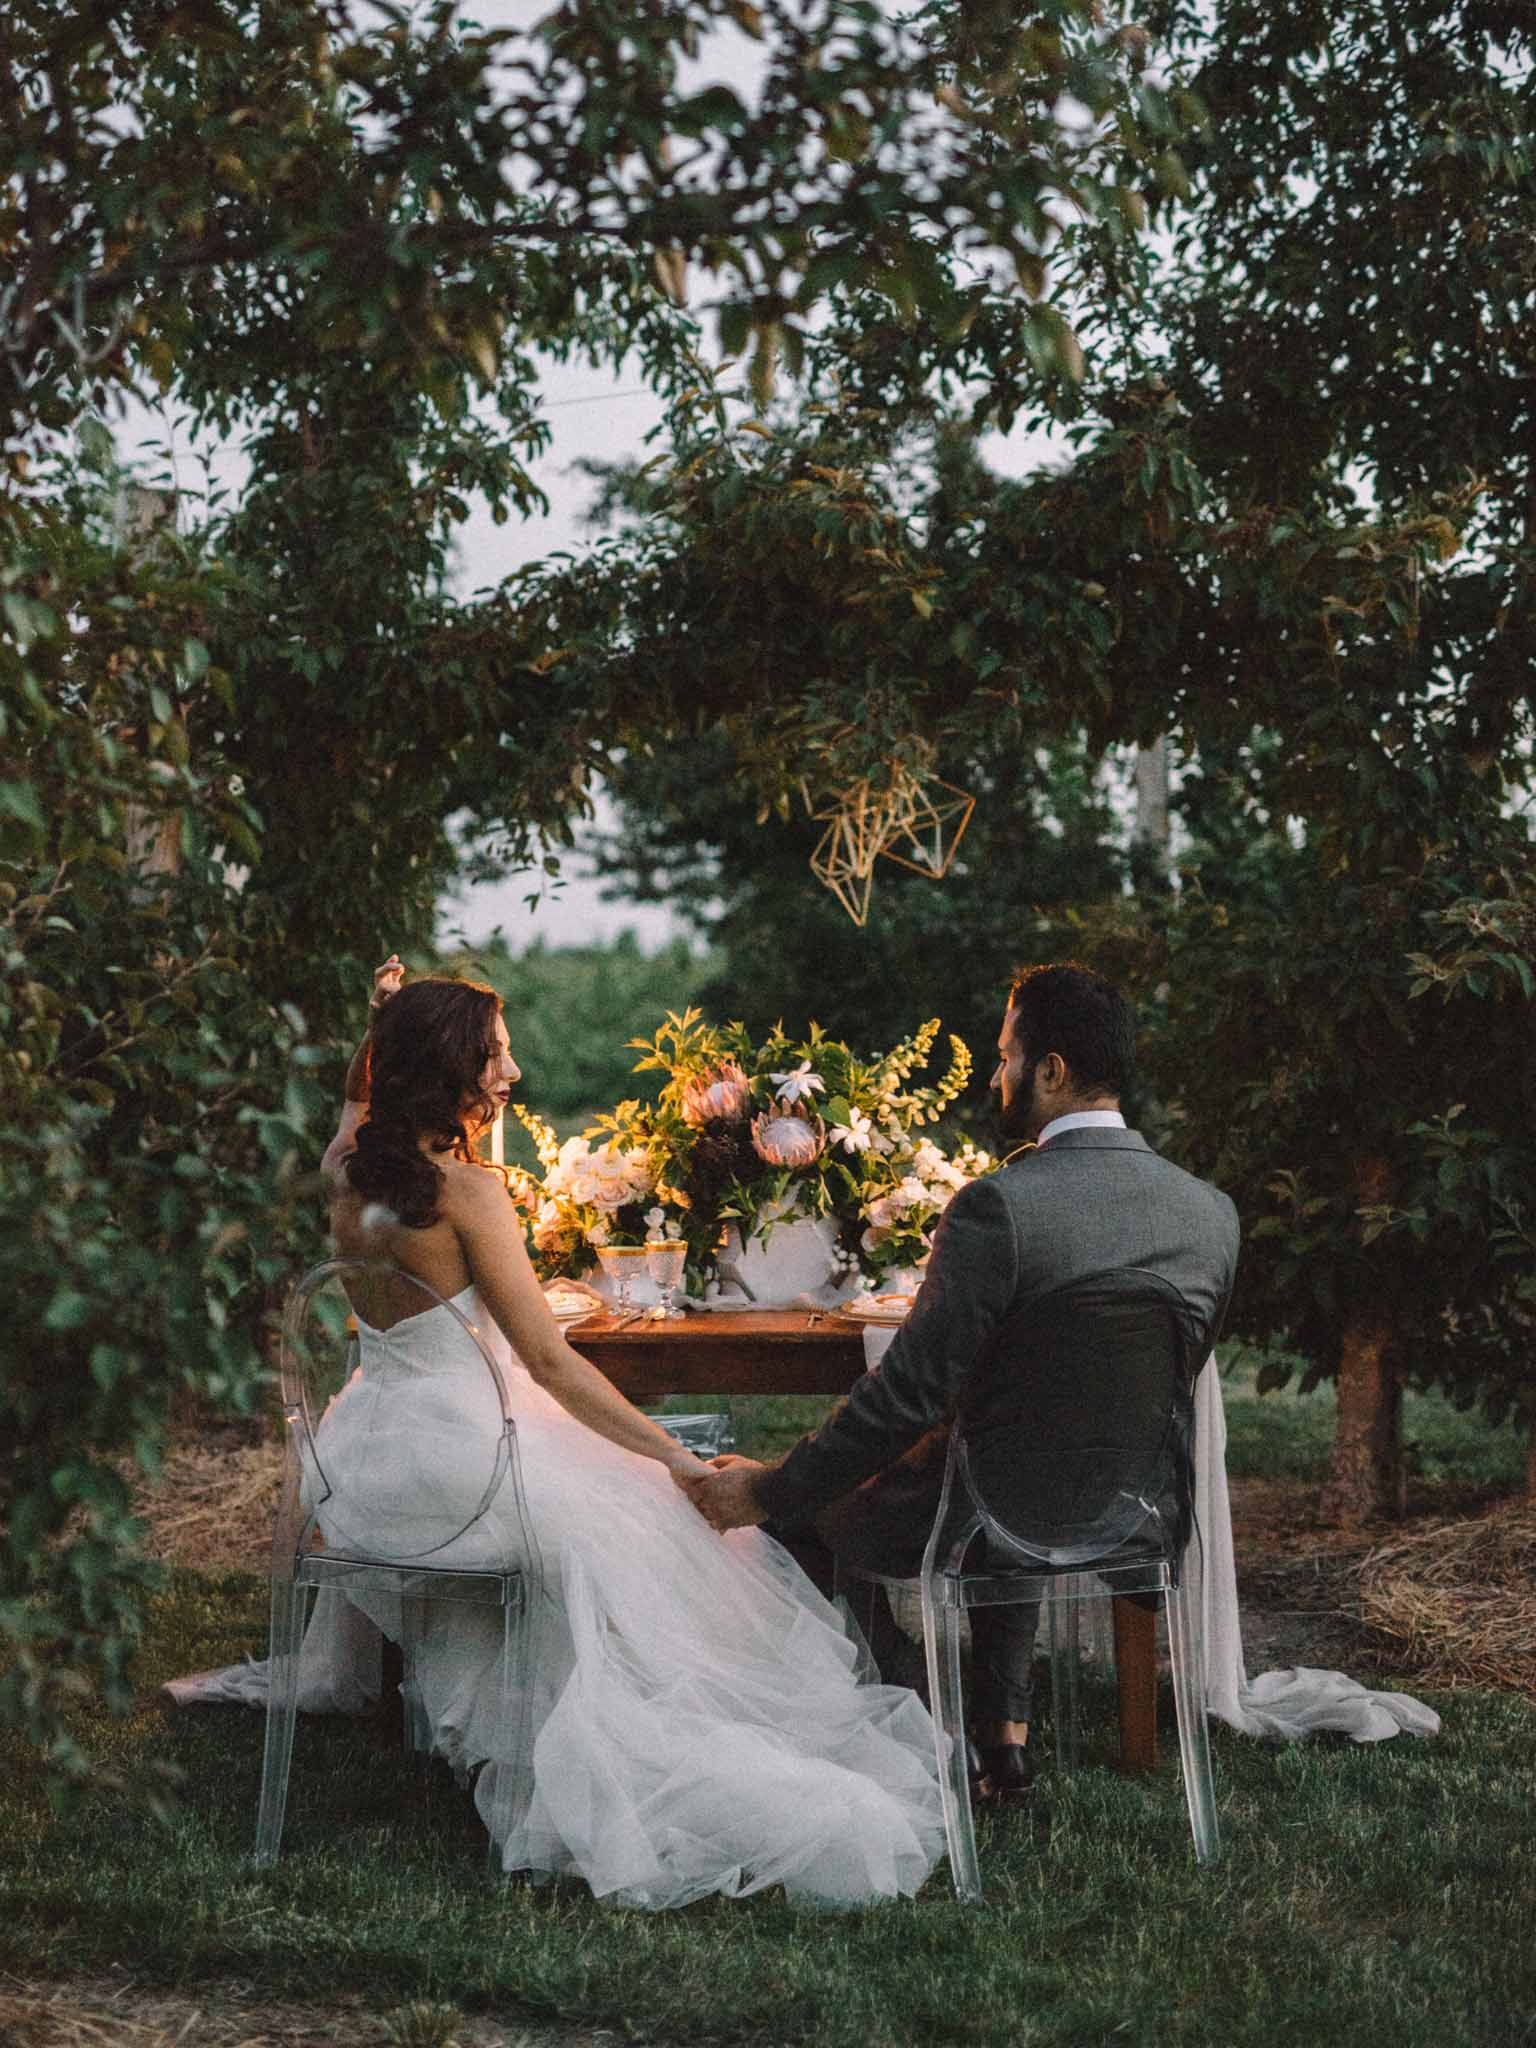 Candlelit Elopement | Olive Photography Toronto